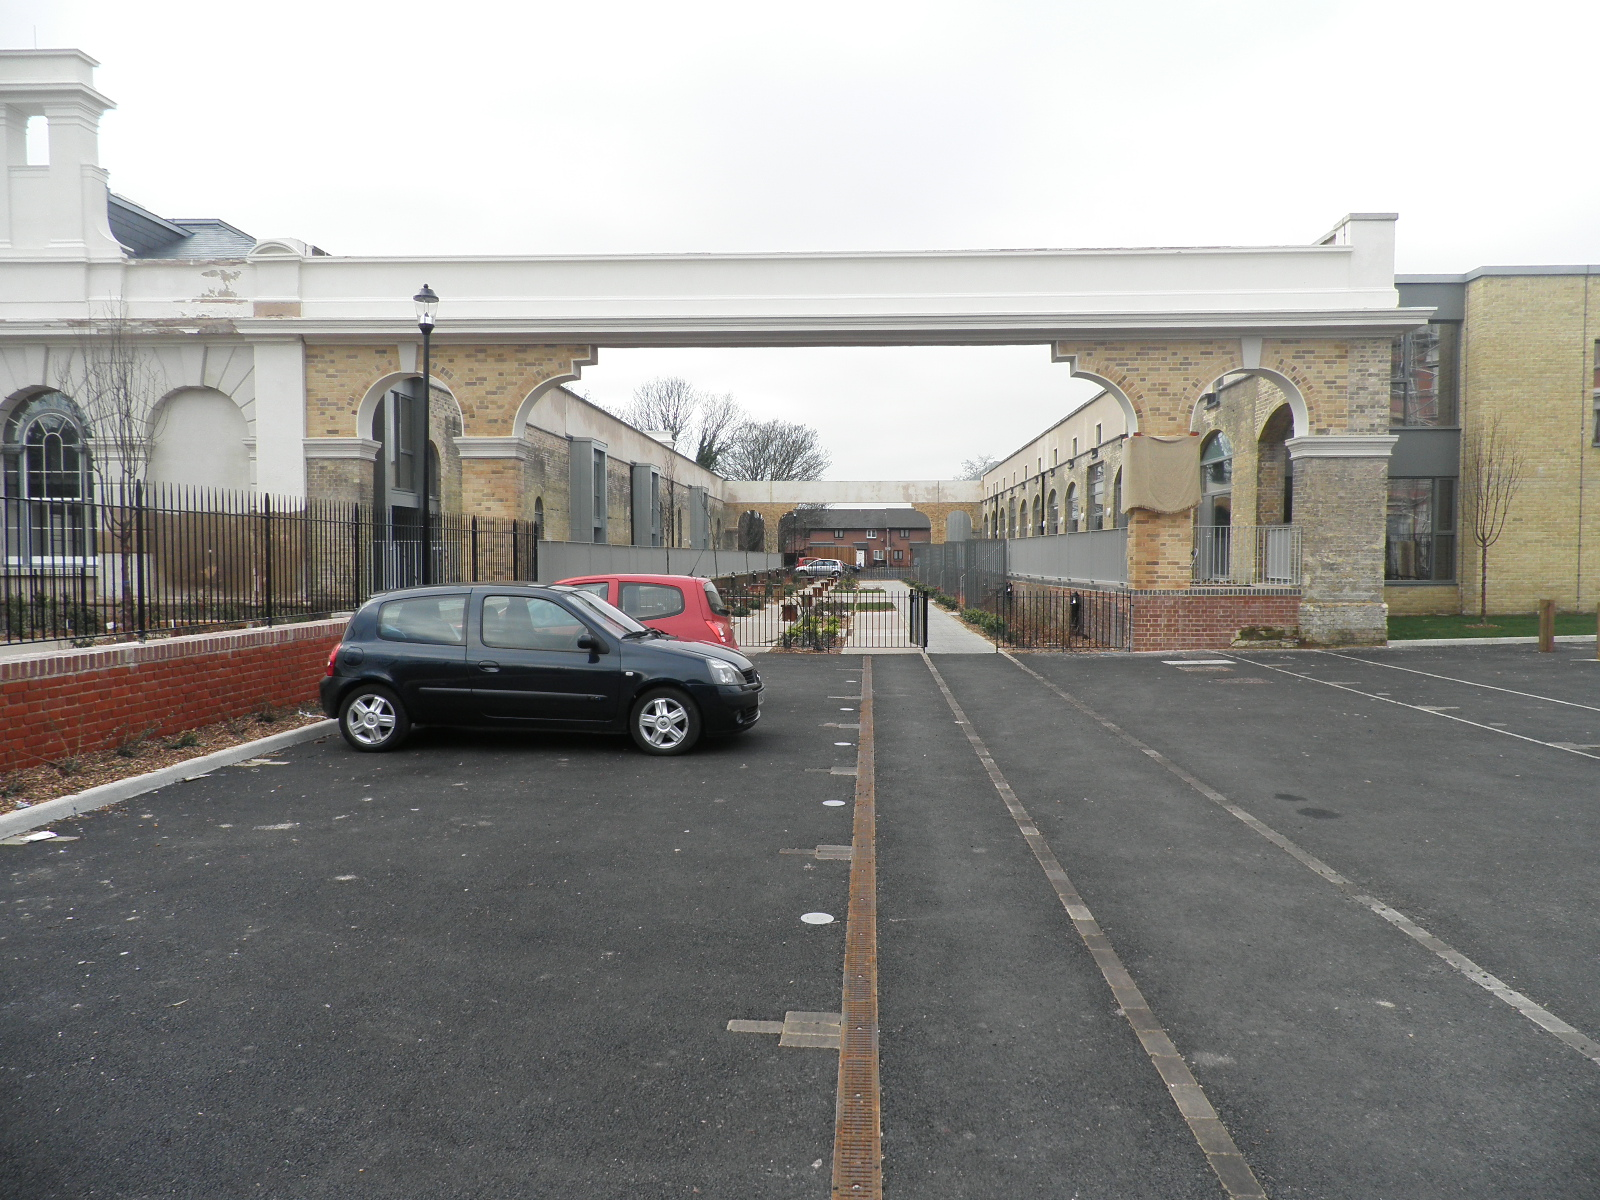 Gosport Station car park